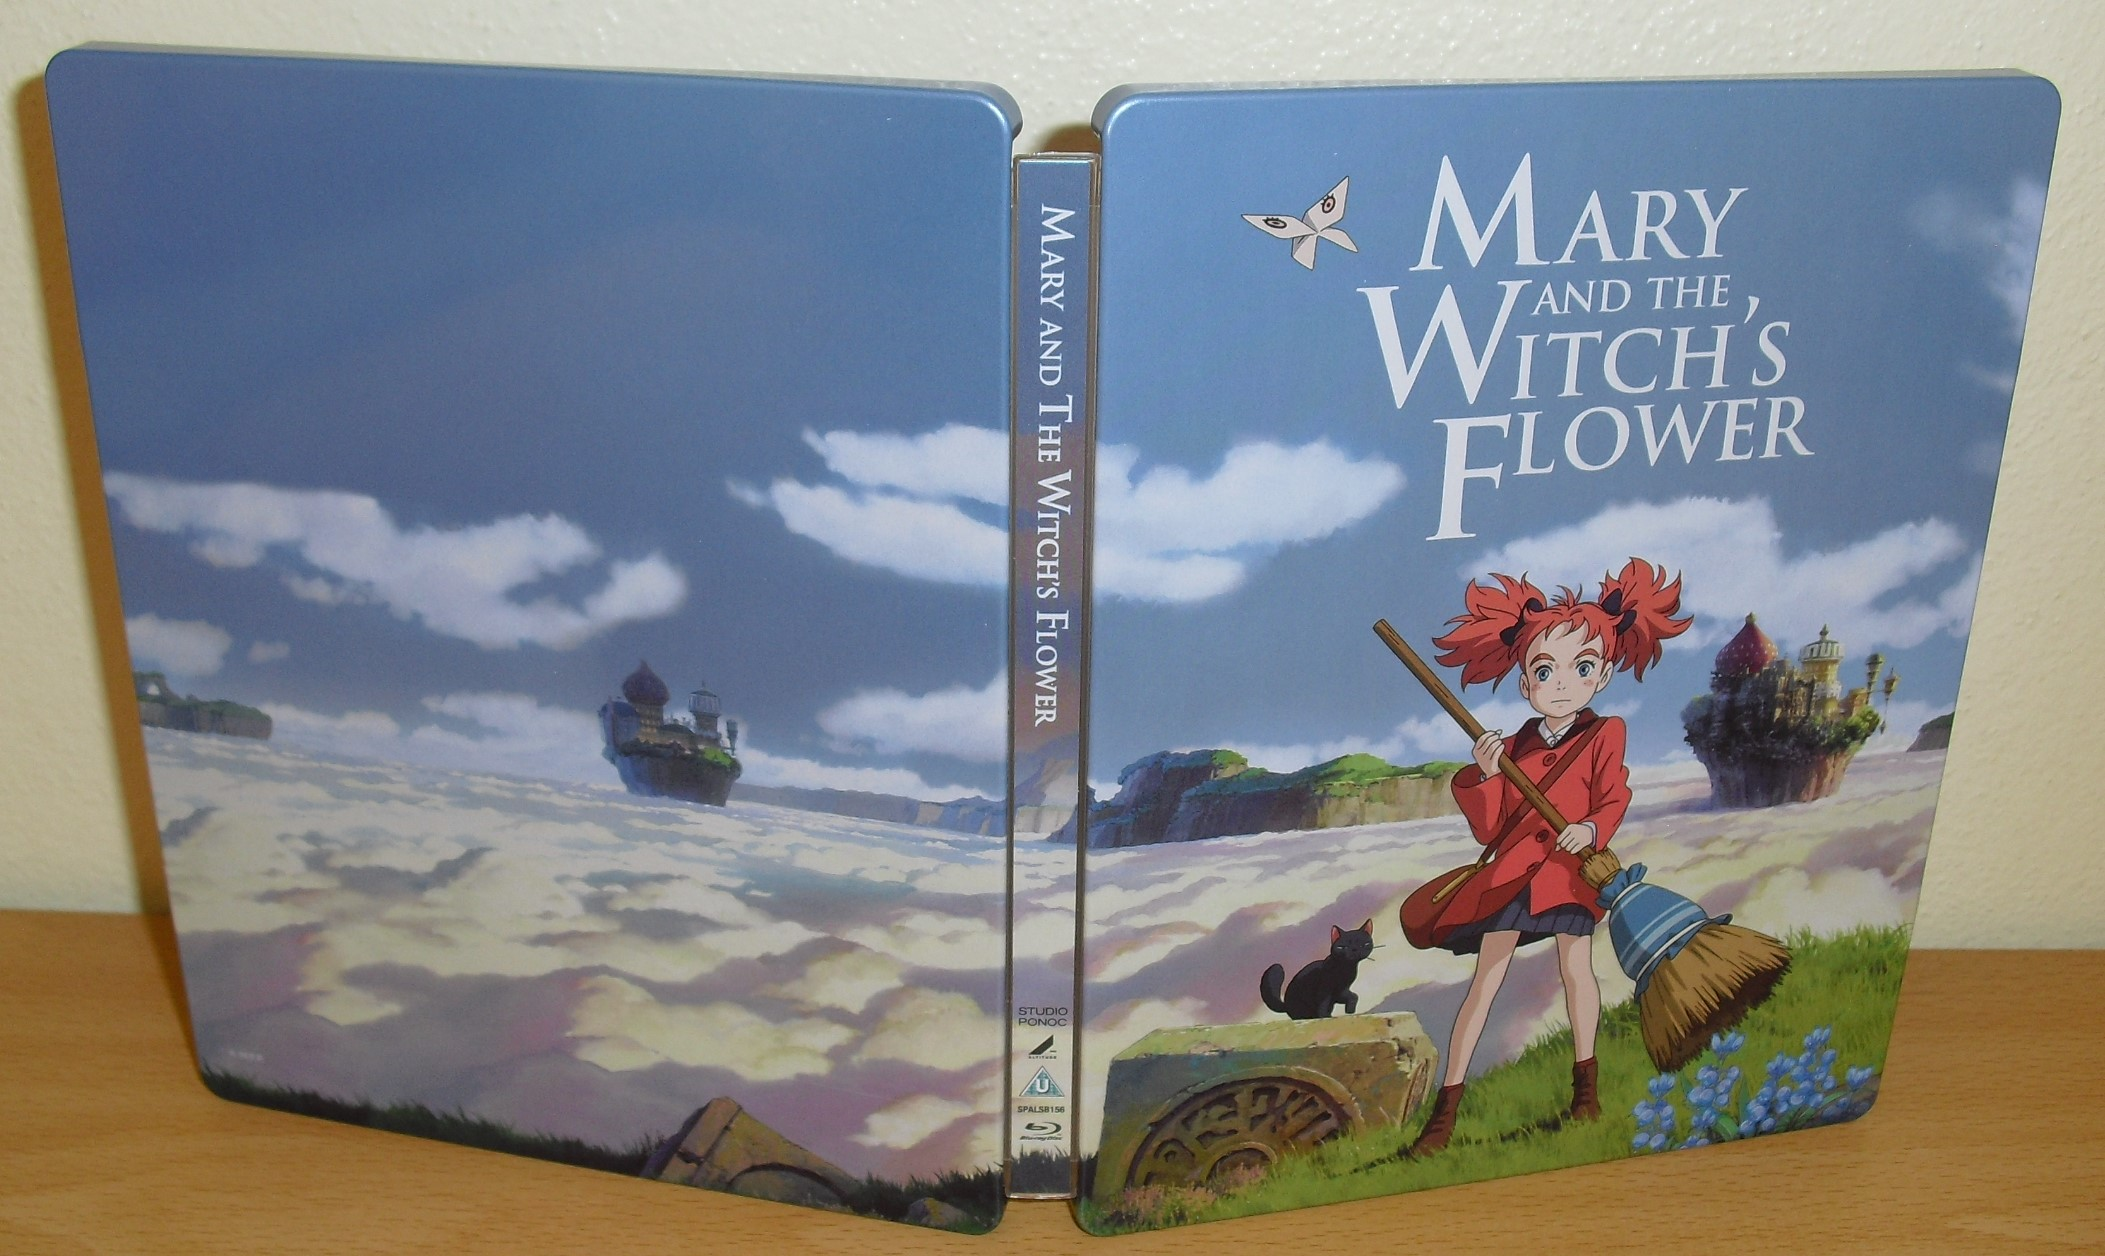 https://cld.pt/dl/download/f0ab58ac-9f45-4cb1-b59c-734a6b97e2d8/Mary.and.the.Witchs.Flower.Steelbook.%286%29.JPG